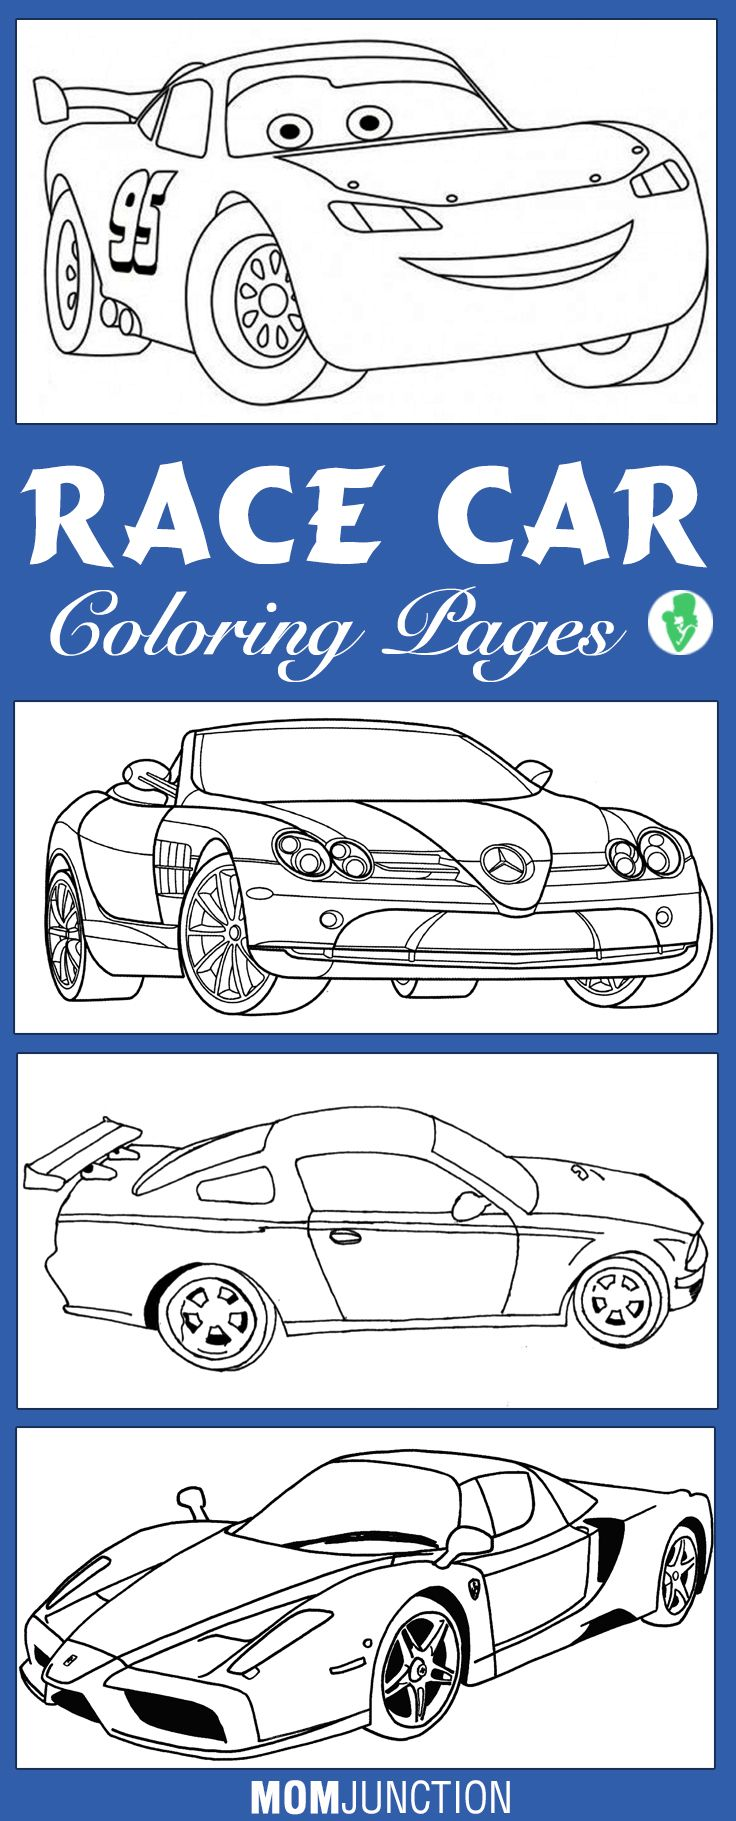 Coloring derby cars - Top 10 Race Car Coloring Pages For Your Little Ones